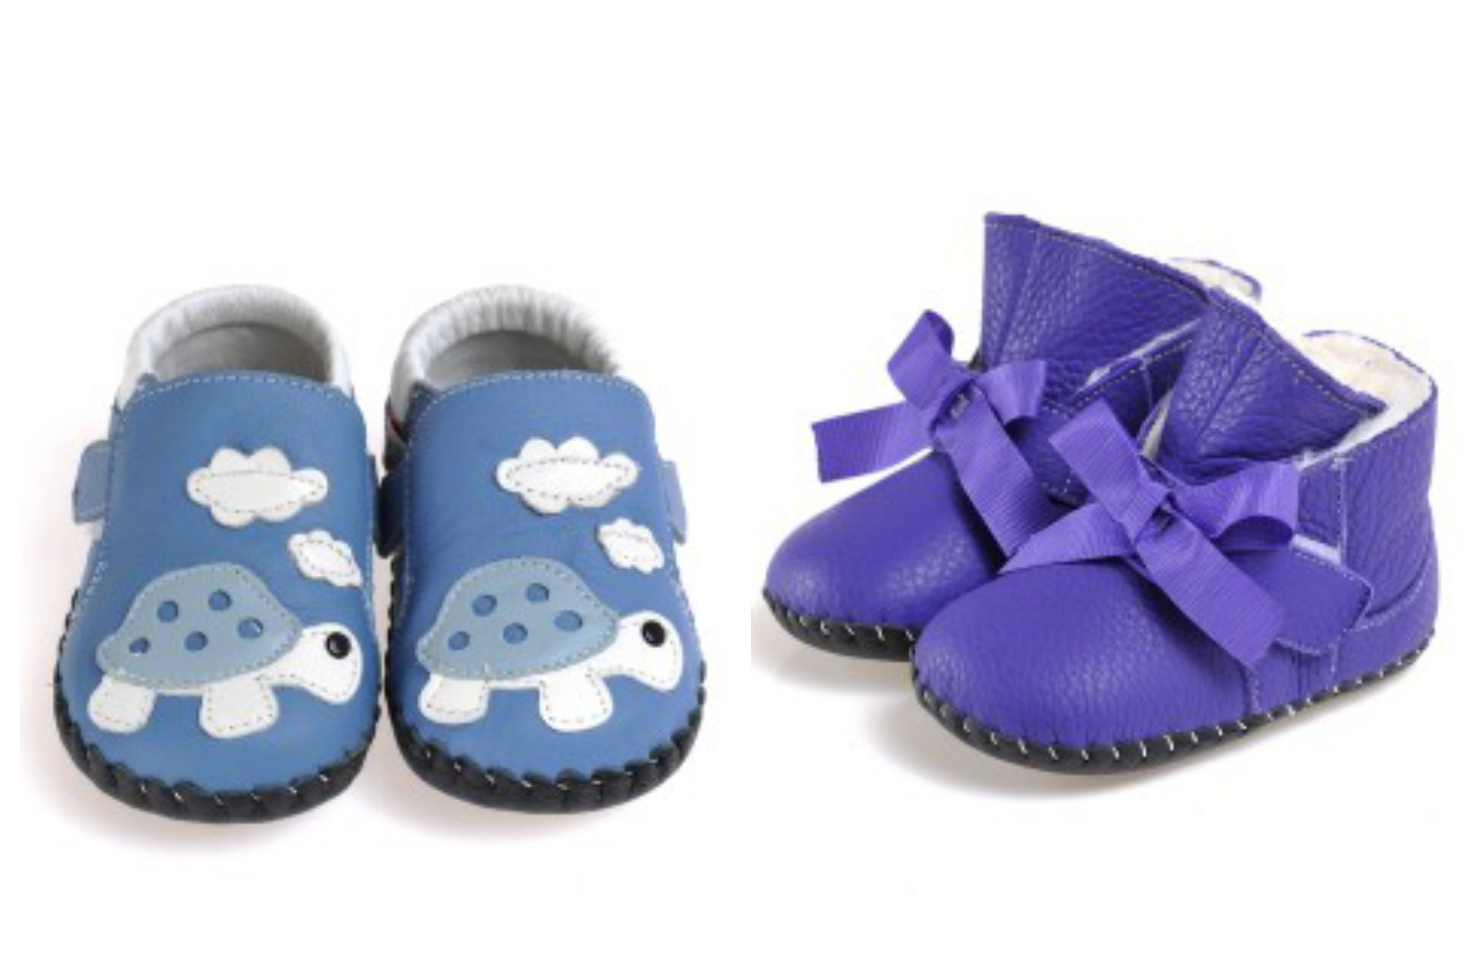 5 Tips for Buying Baby's First Shoes